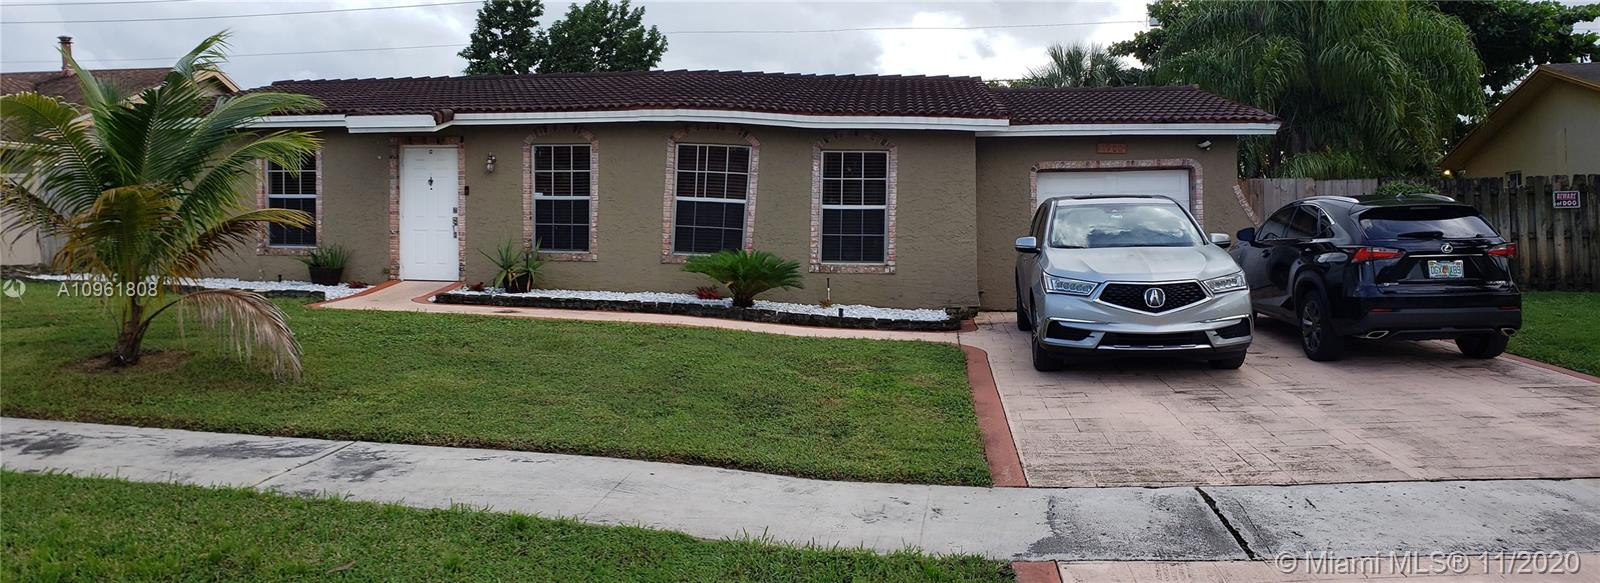 Motivated Seller, Owner Occupied, NO HOA, Great Locations, Minutes from Sawgrass Mall, Huge Backyard, Beautiful Pool, Remodeled Kitchen, Converted Master Bedroom, Marble Floor in Master Bathroom, New AC Unit, Remodeled Bathroom and Floor.